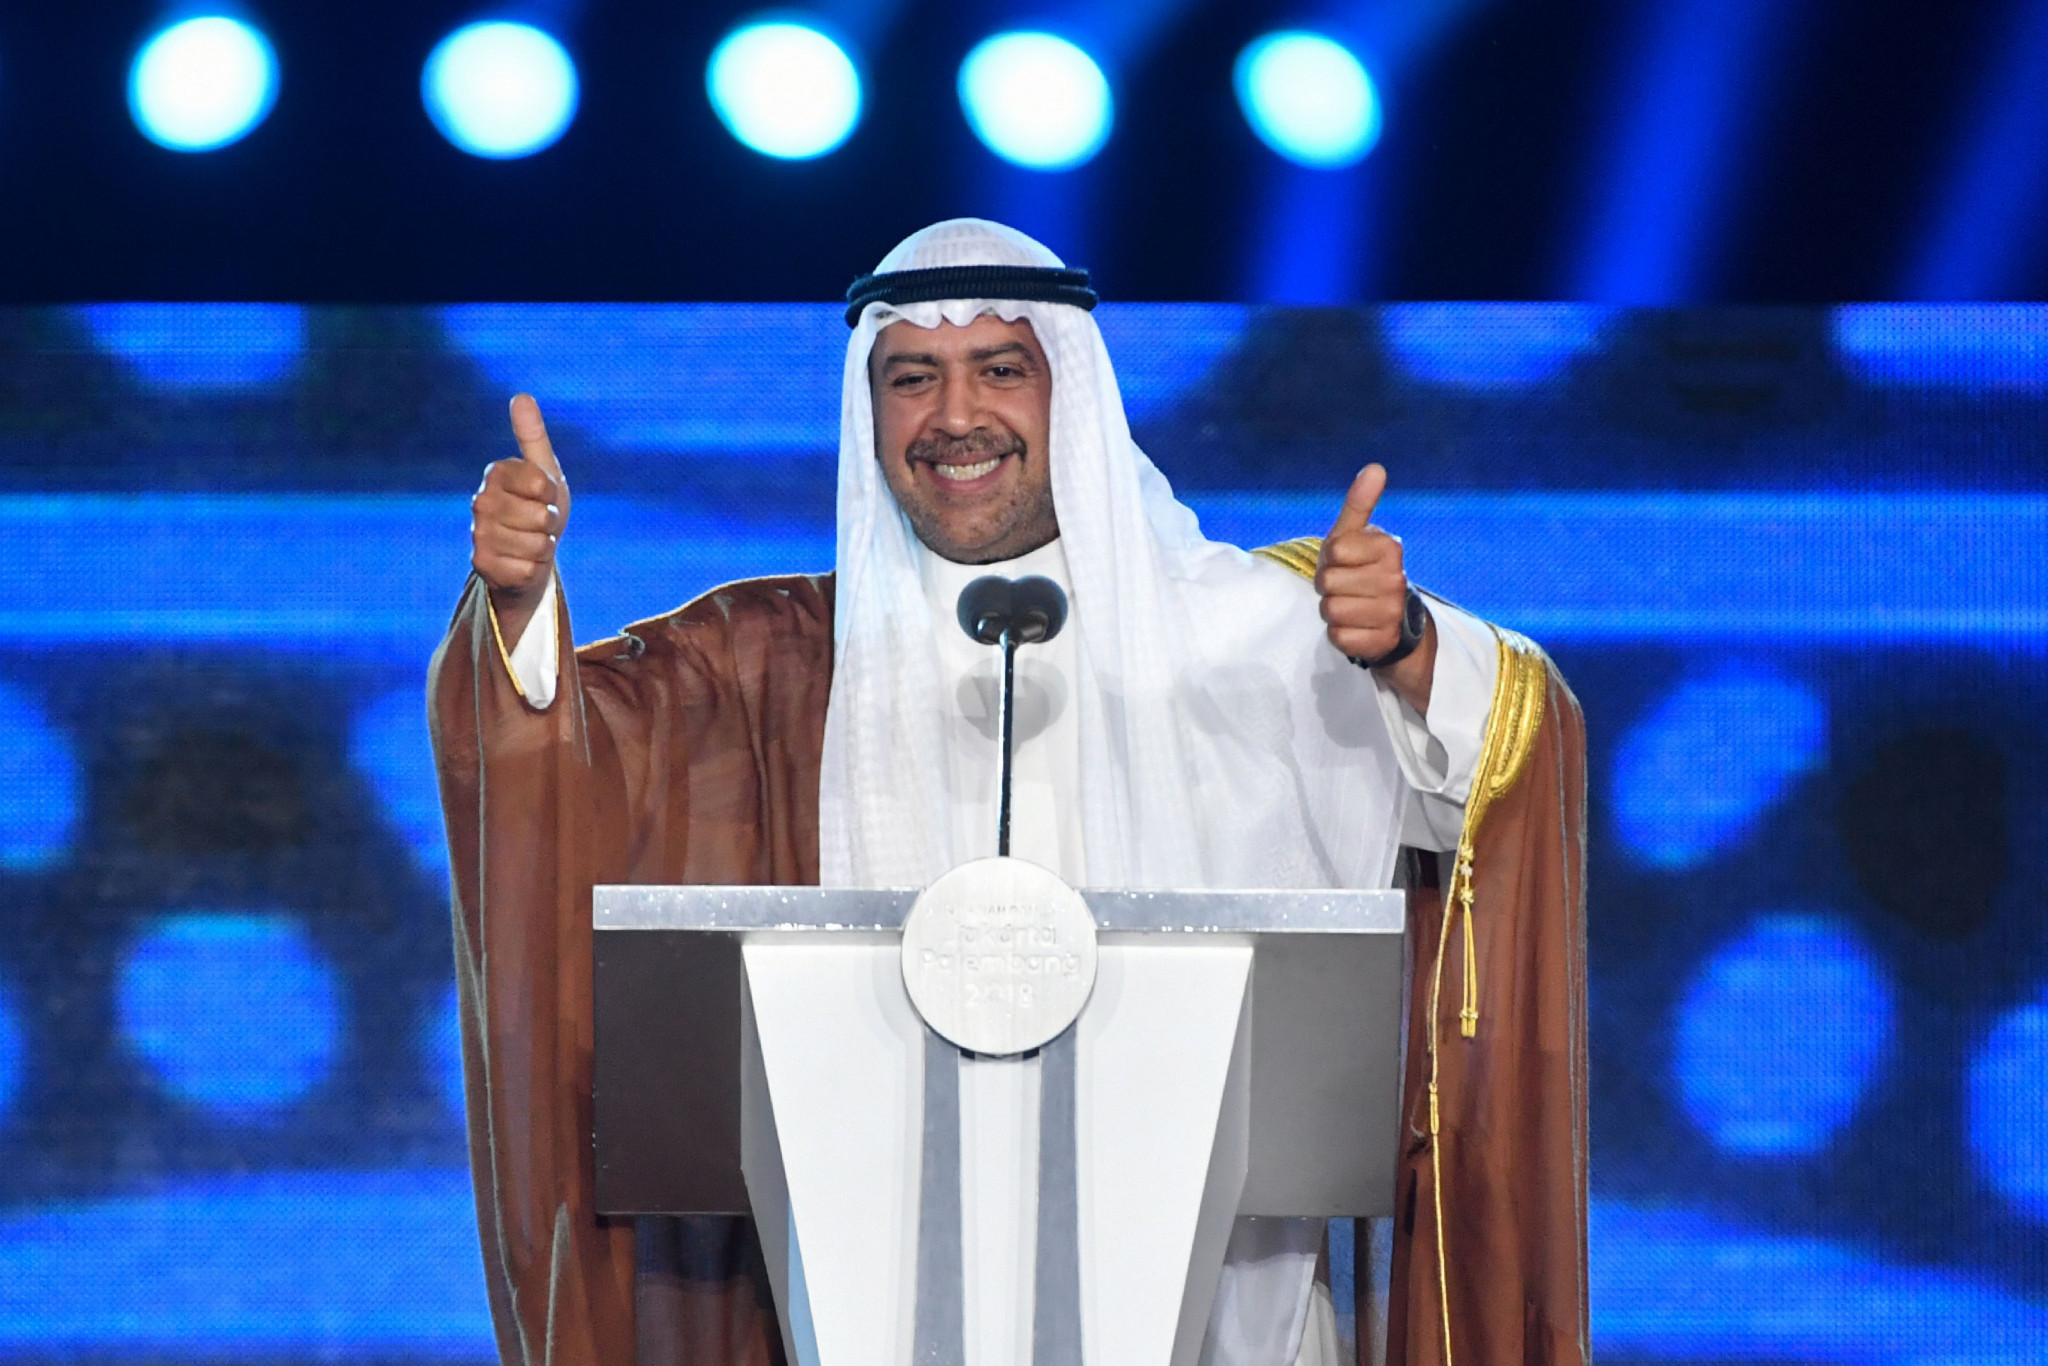 Olympic Council of Asia President Ahmad Al-Fahad Al-Sabah declared the Games officially over ©Getty Images